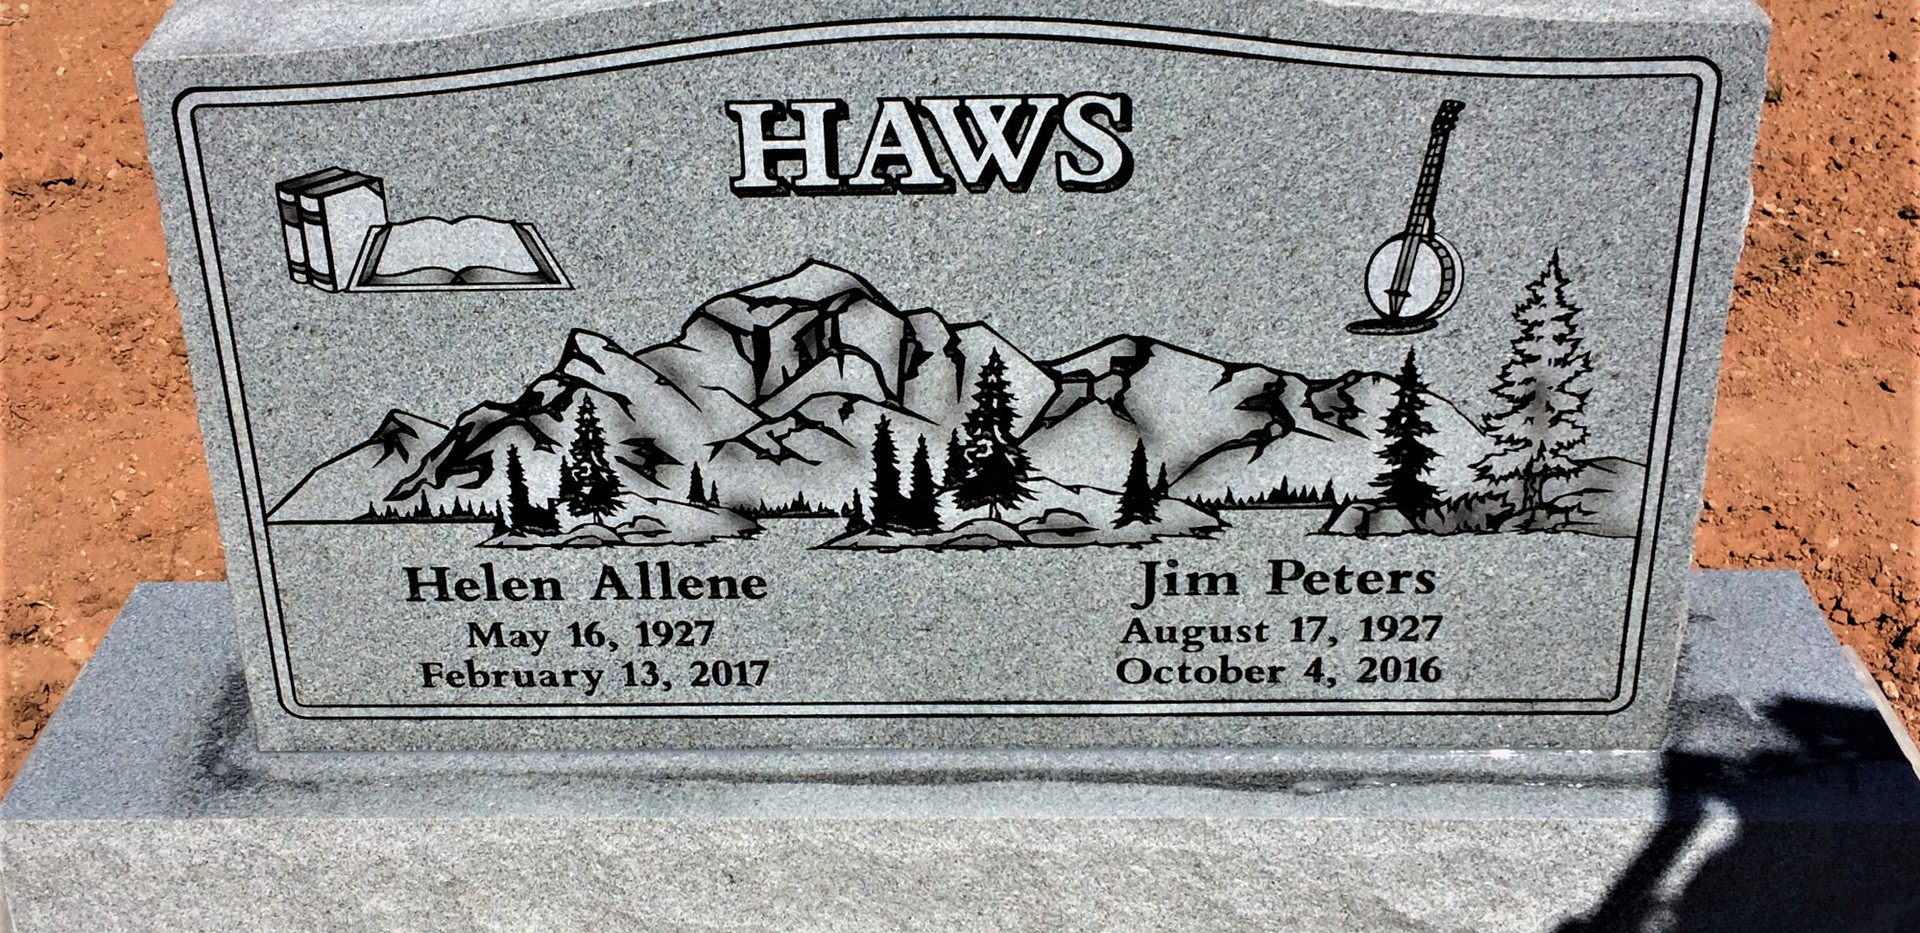 Upright headstone with border mountains